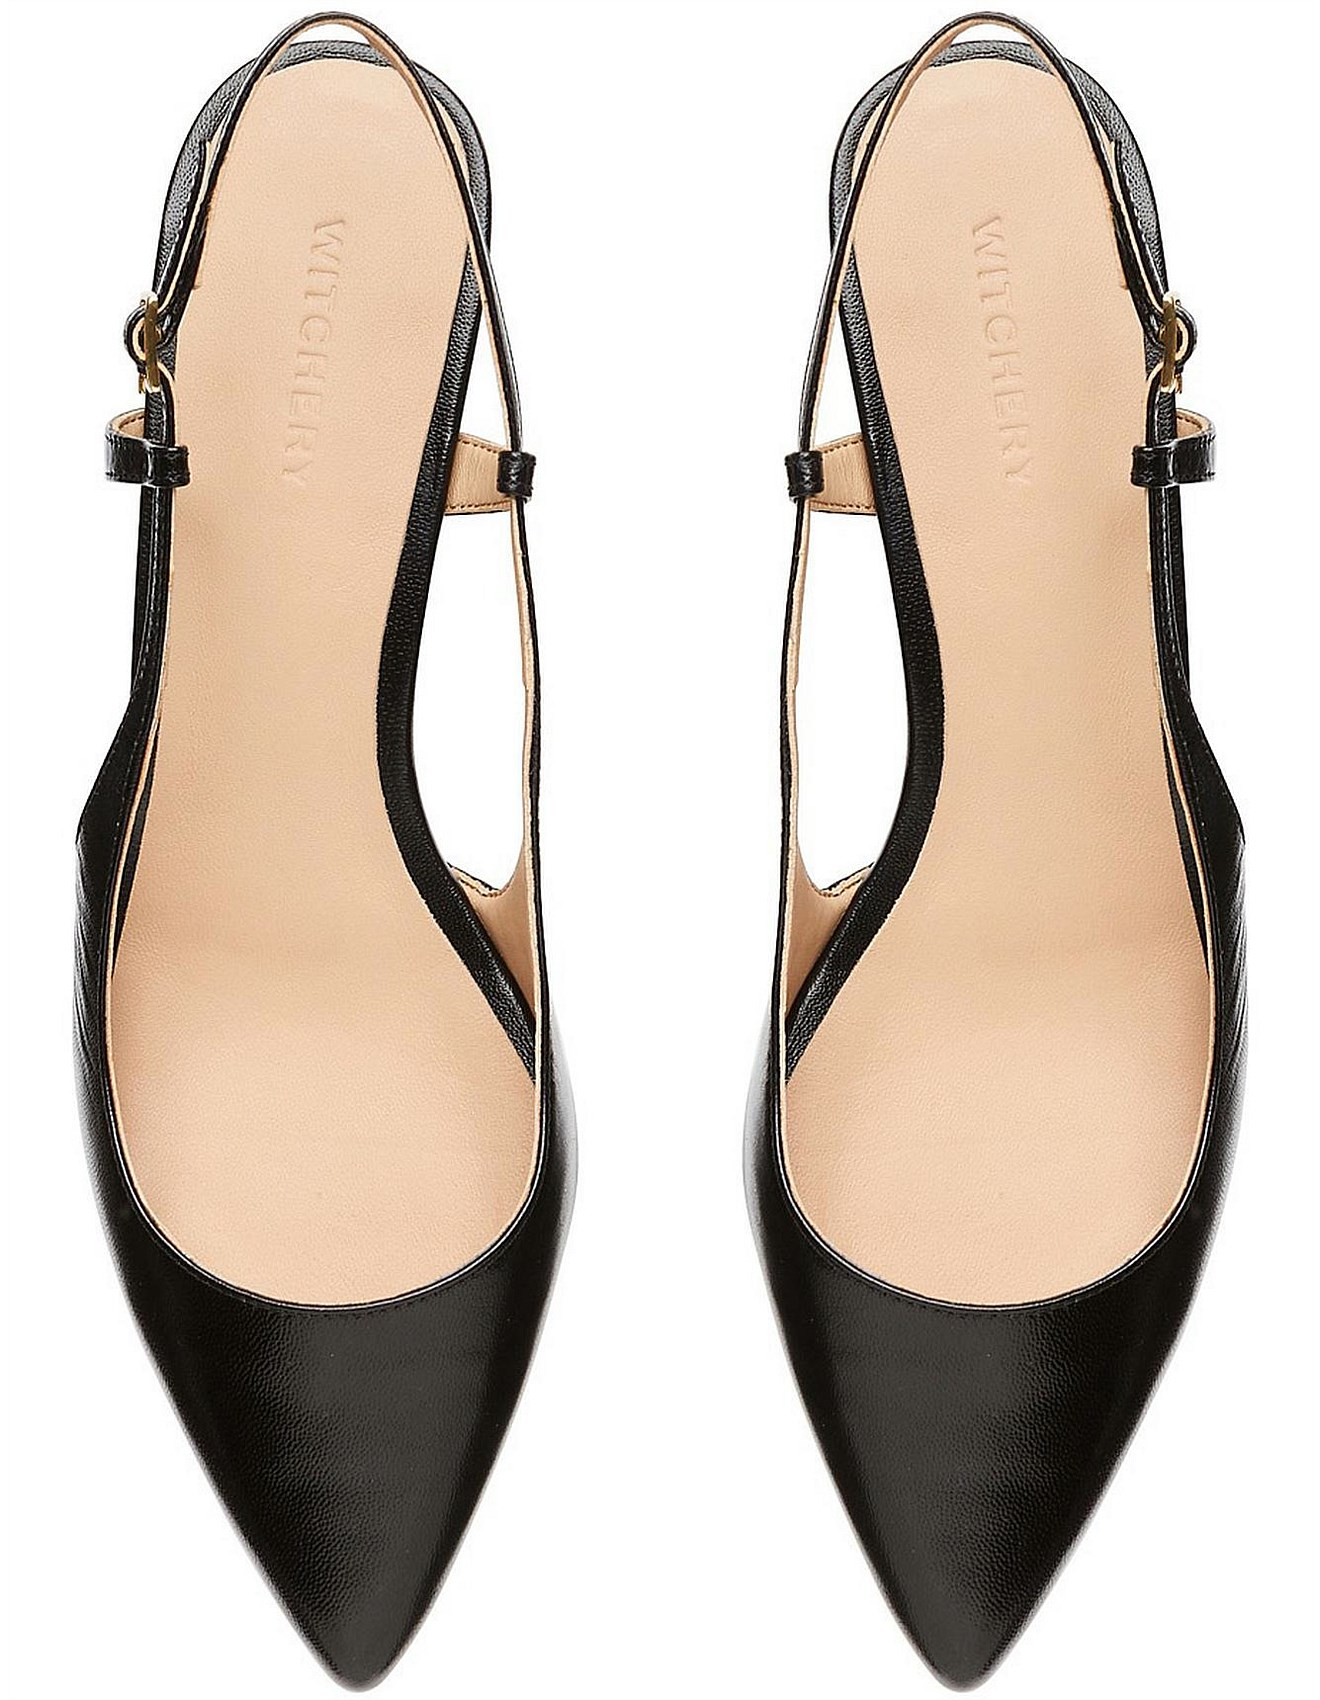 Witchery Shoes Sale